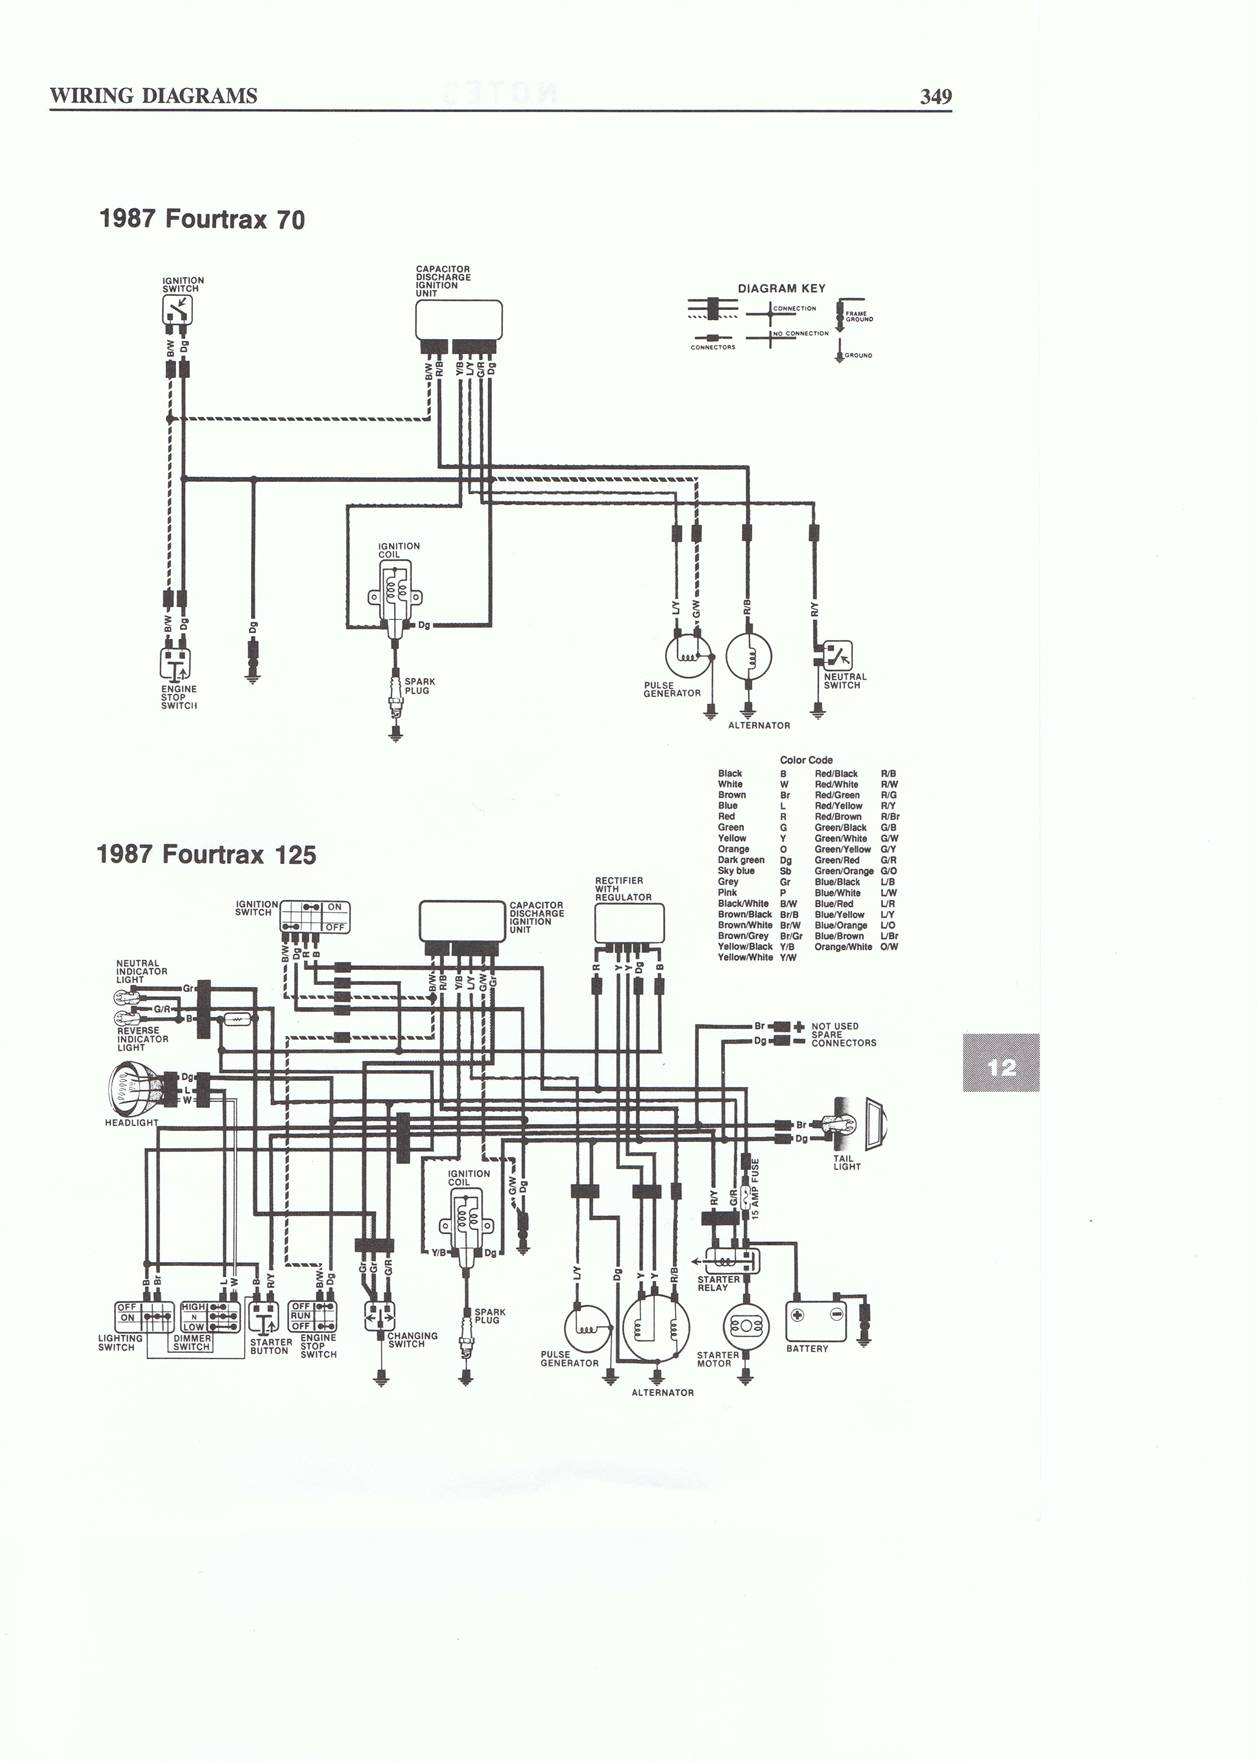 gy6 engine wiring diagram?t=1398725710 gy6 engine wiring diagram Baja 150 ATV Wiring Diagram at eliteediting.co